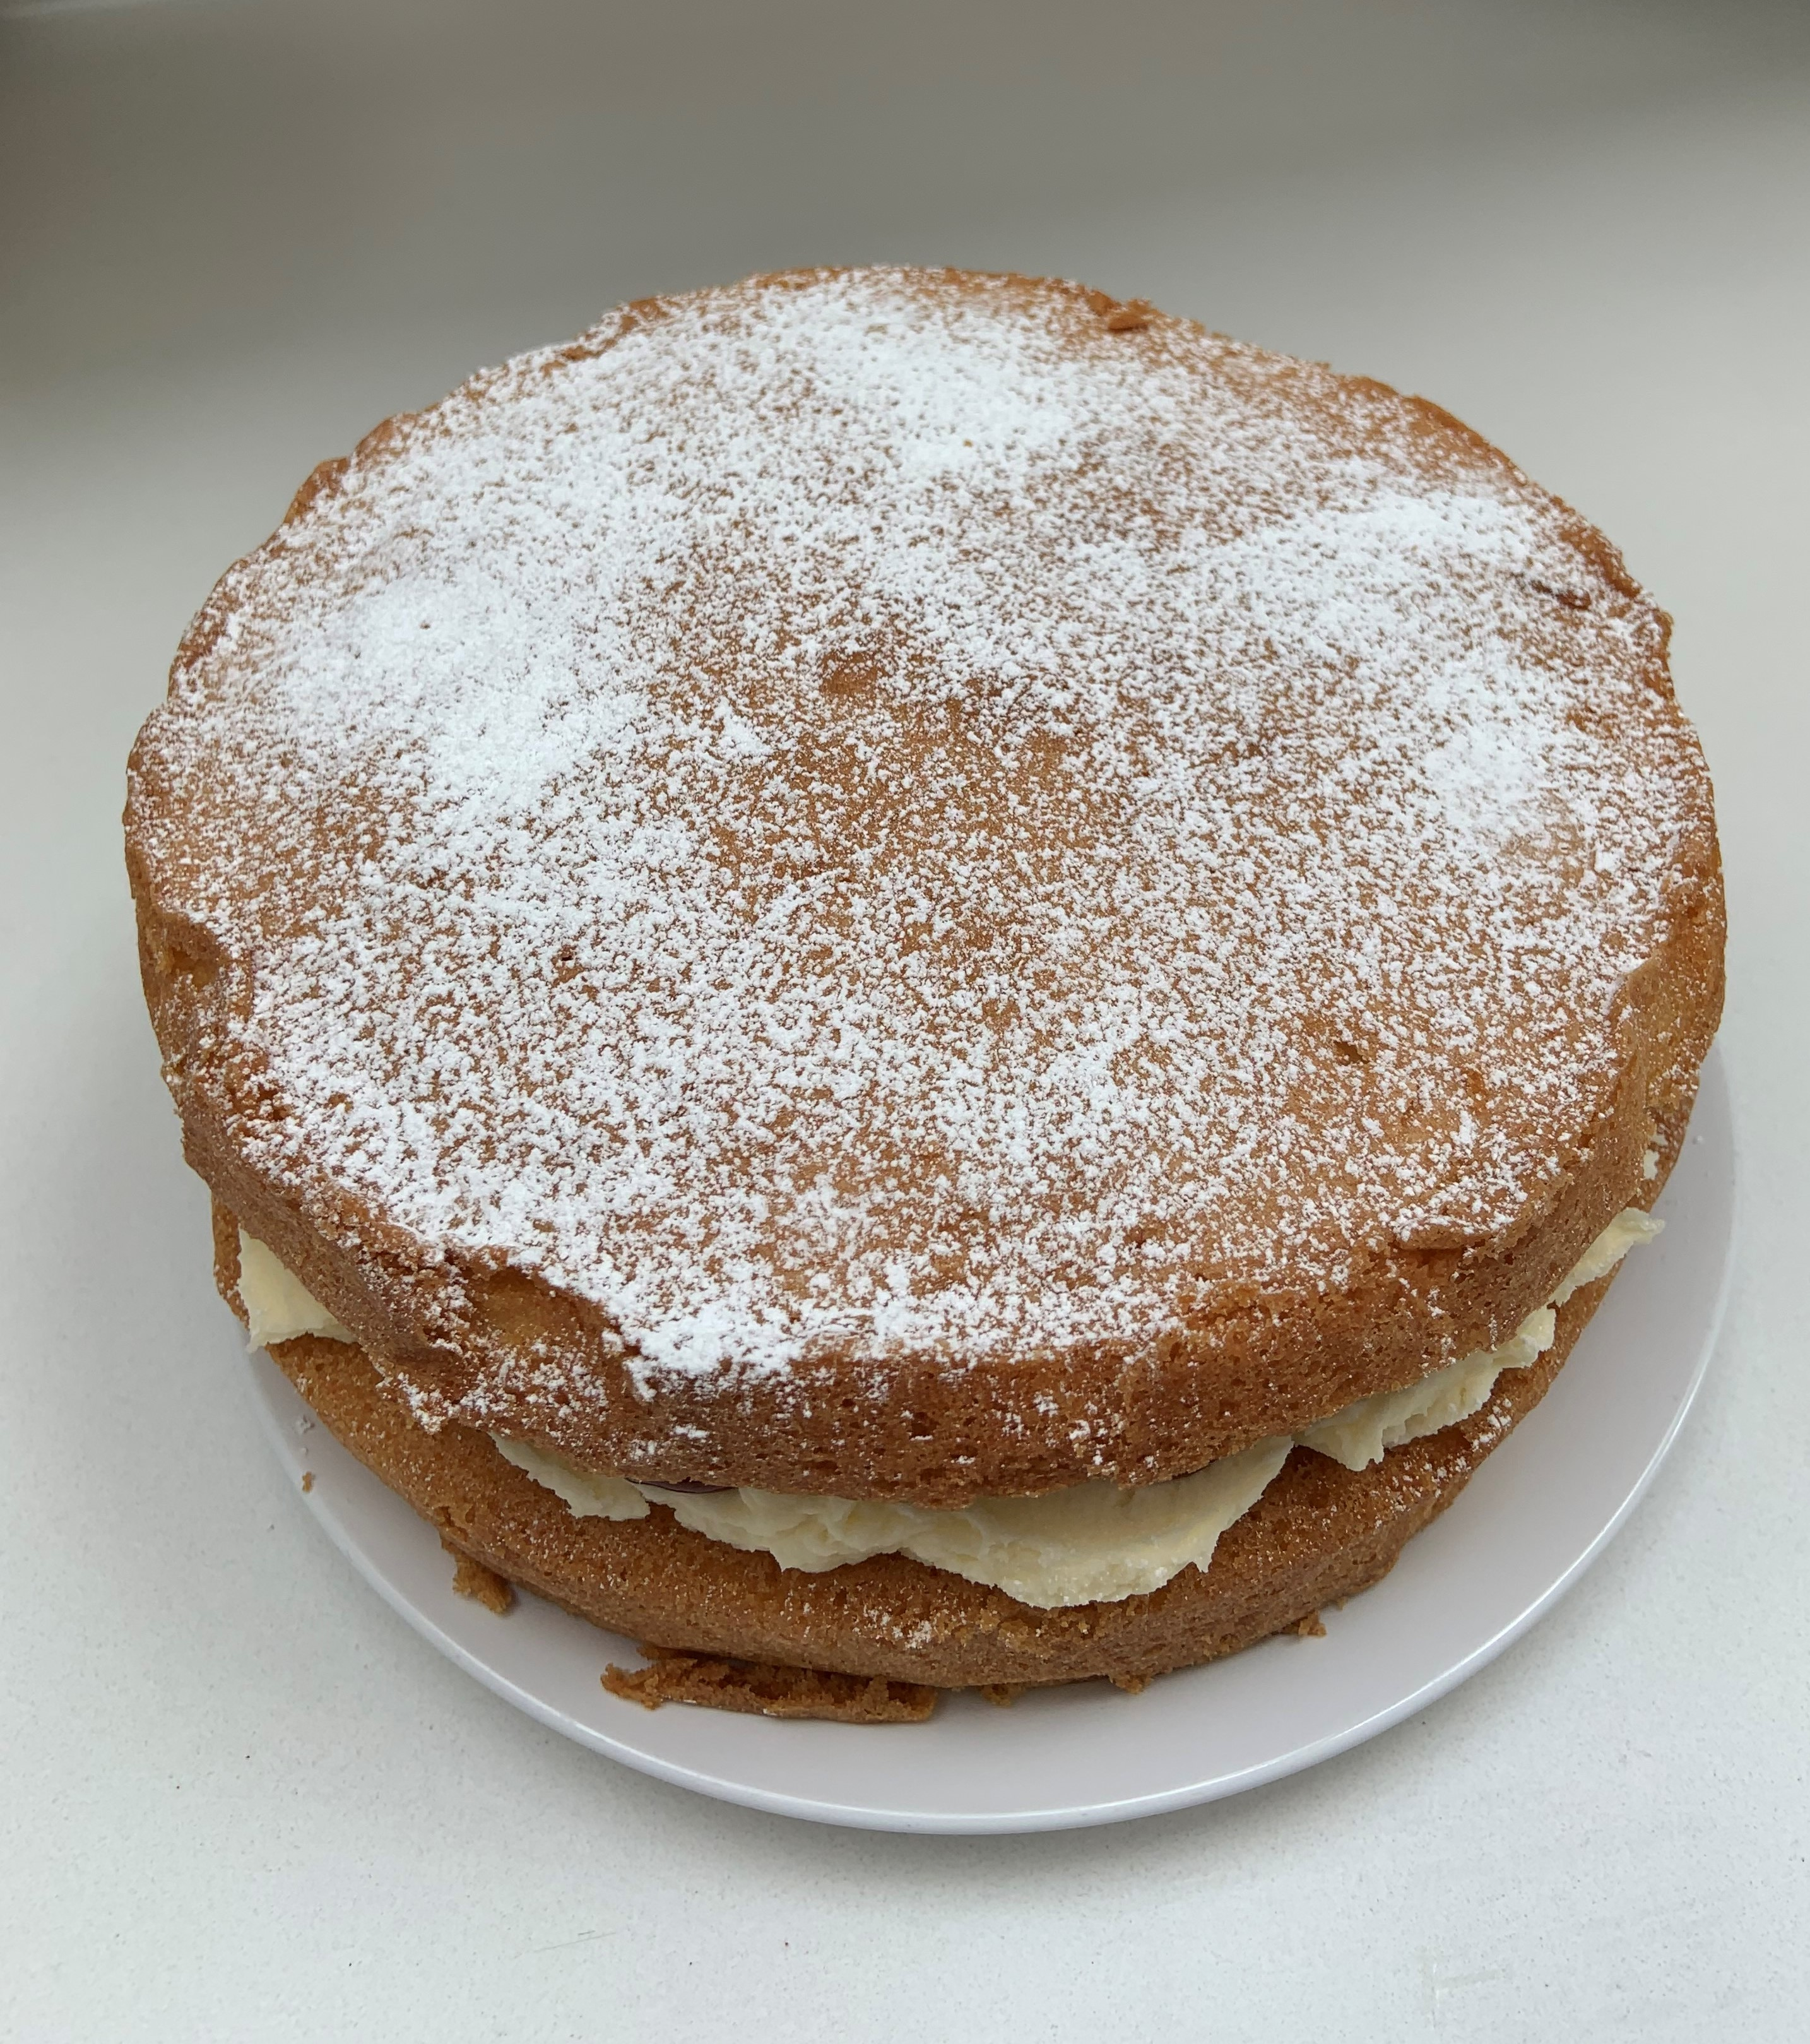 Picture of a Victoria sandwich which resembles two sponge cakes with cream in the middle